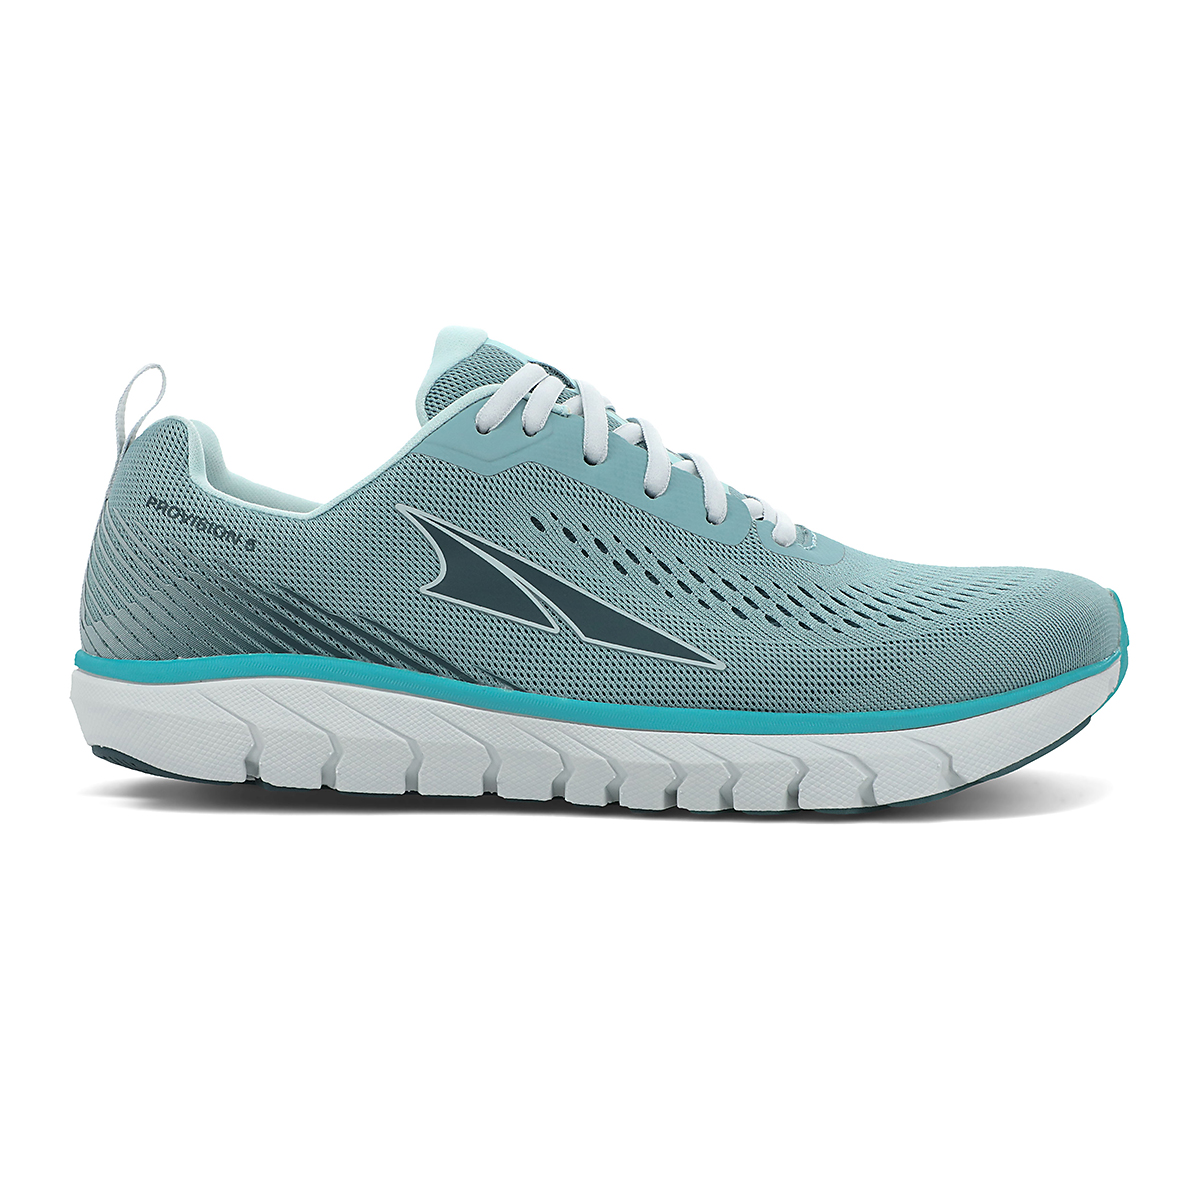 Women's Altra Provision 5 Running Shoe - Color: Teal/Green - Size: 5.5 - Width: Regular, Teal/Green, large, image 1